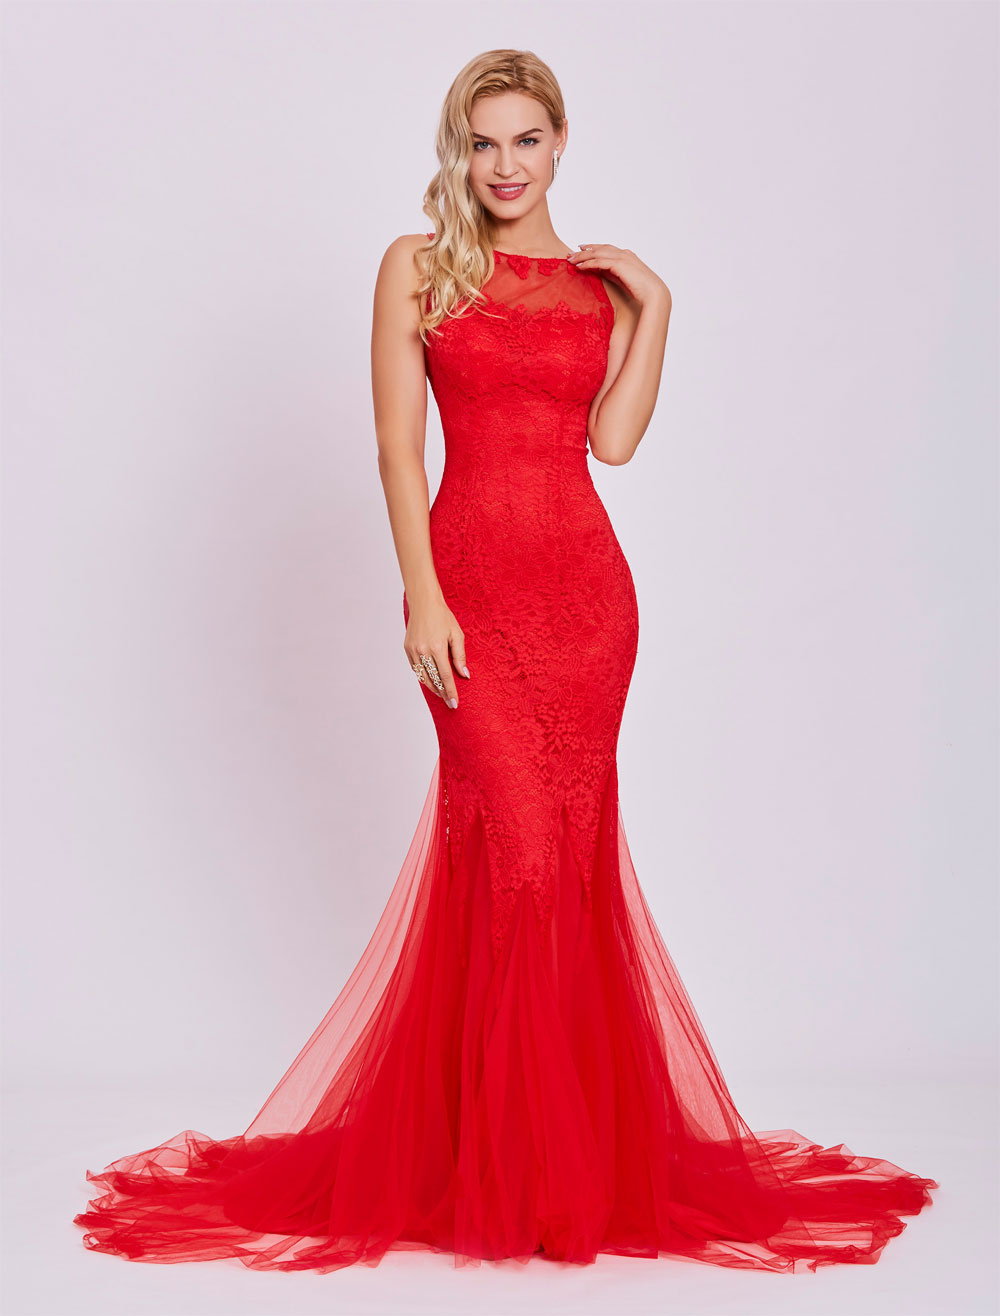 Red Prom Dresses 2018 Long Backless Sexy Evening Dress Lace Mermaid Tulle Formal Gown With Train